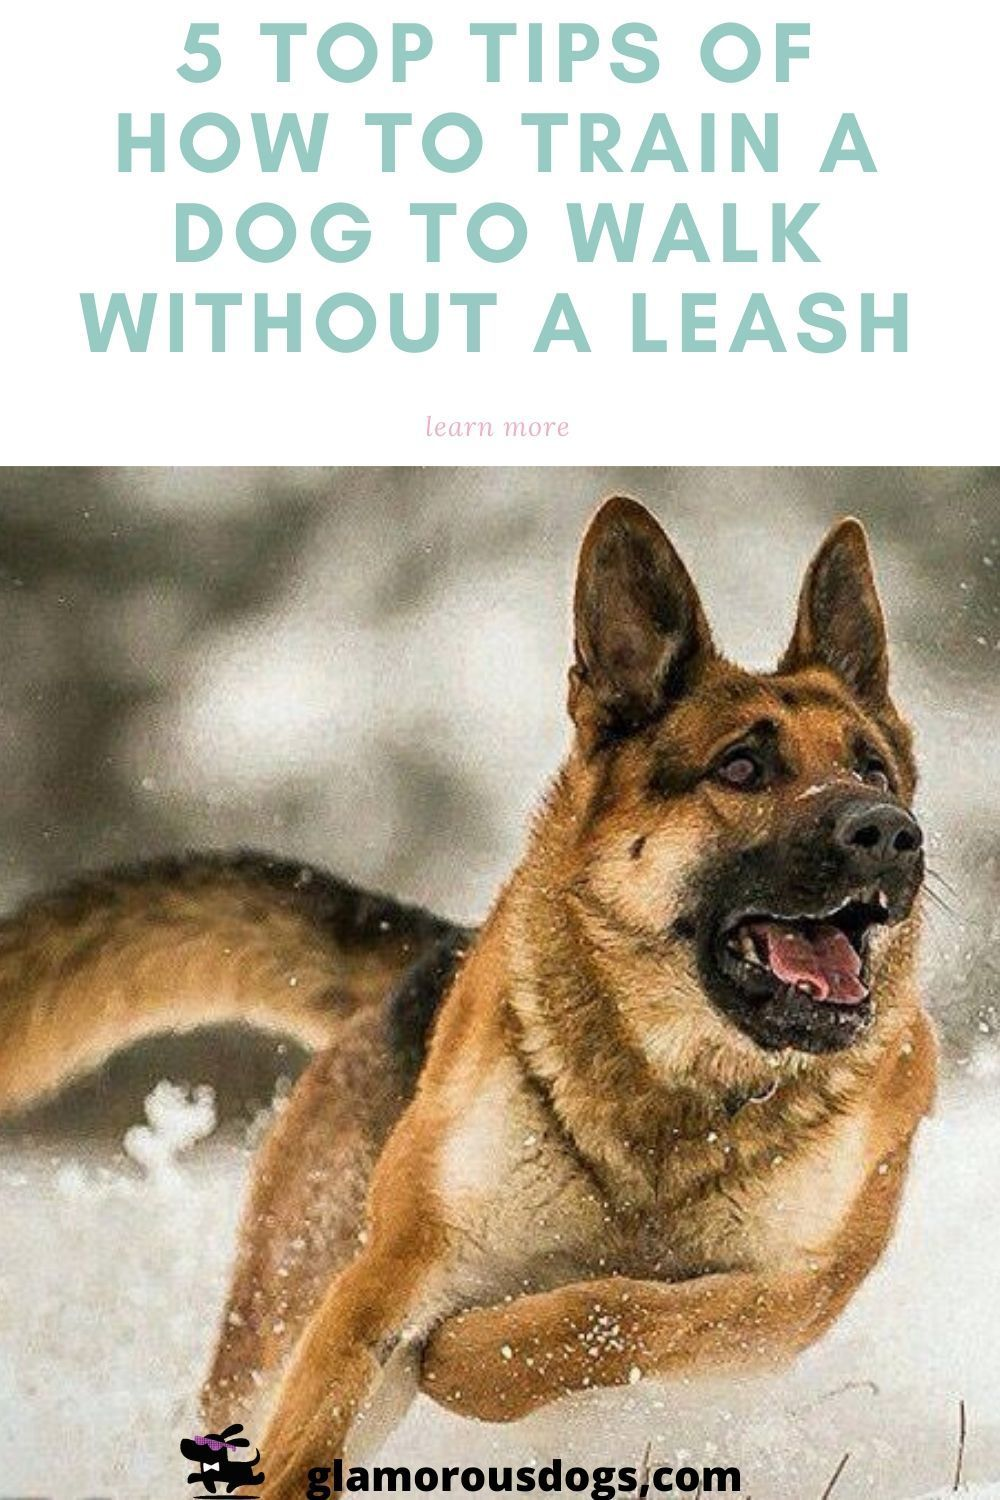 How to train a dog to walk without a leash top 5 tips in